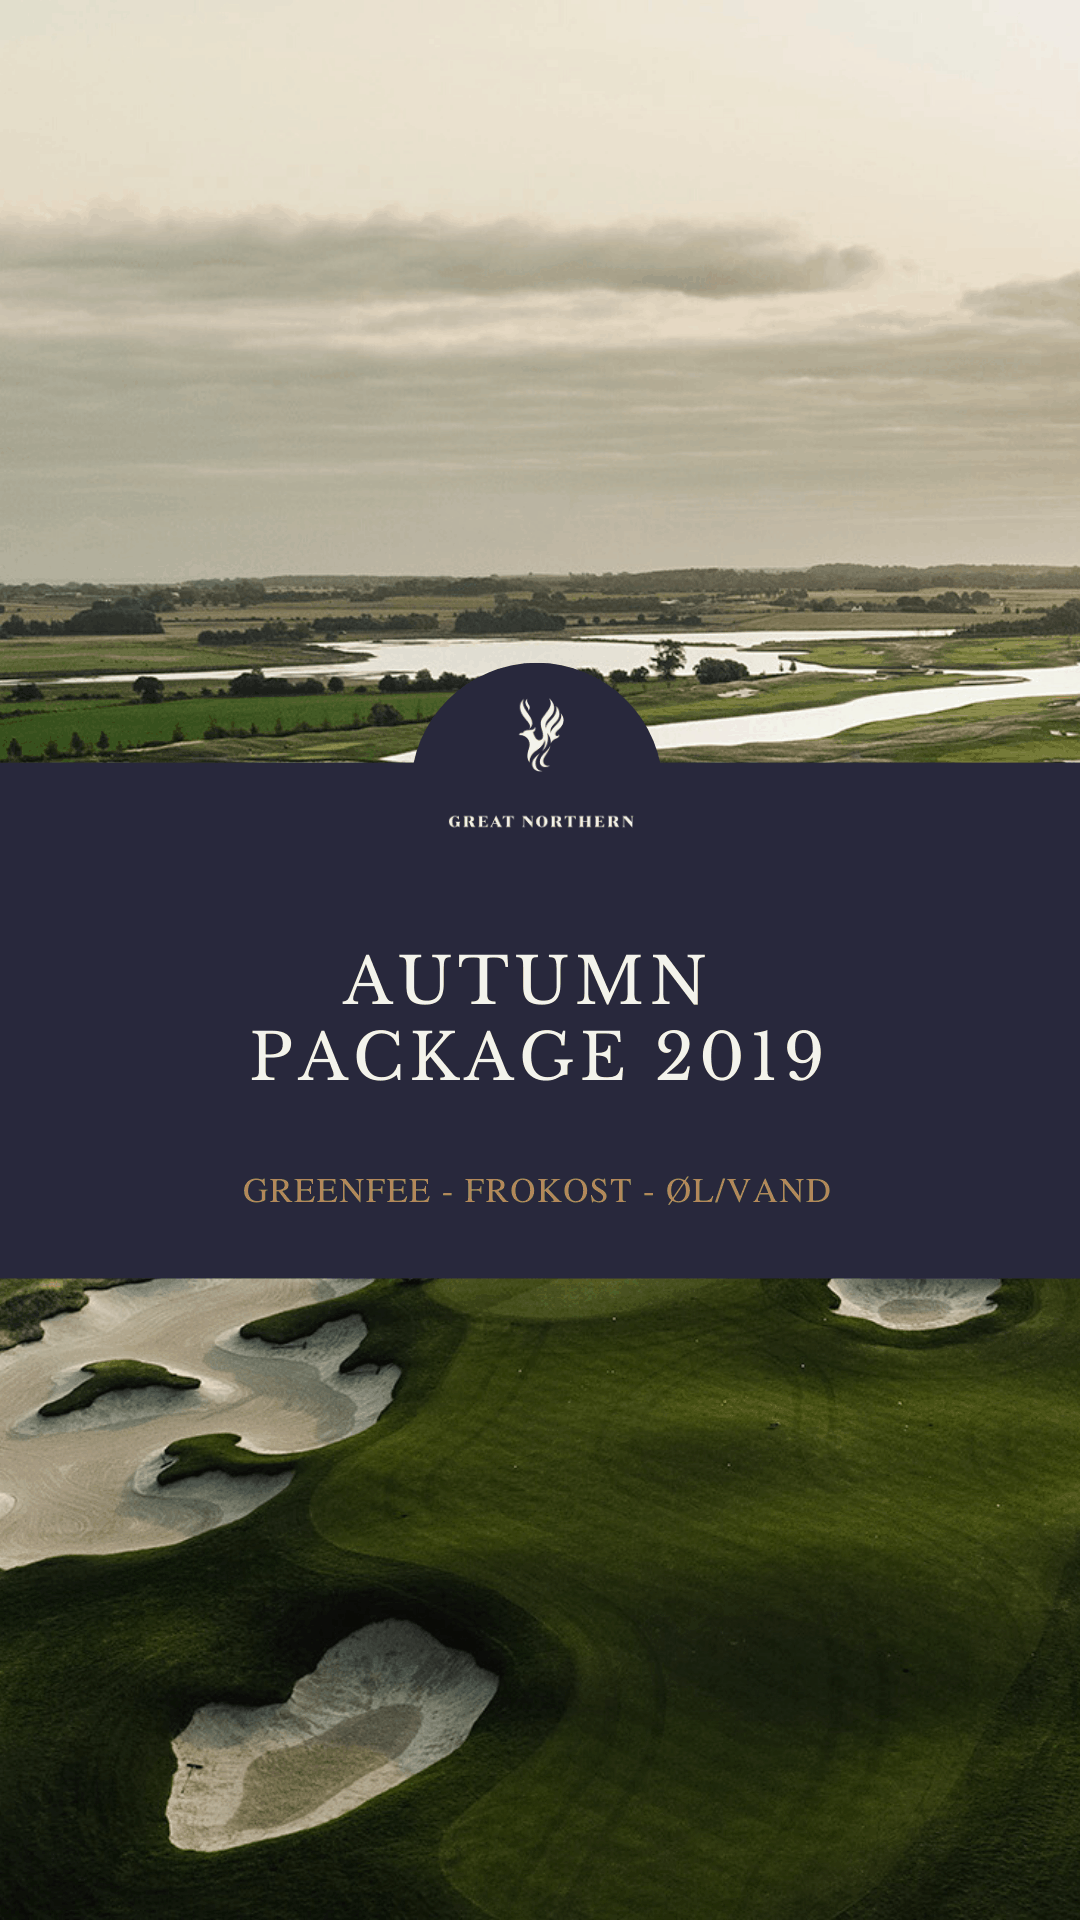 AUTUMN PACKAGE – GREENFEE